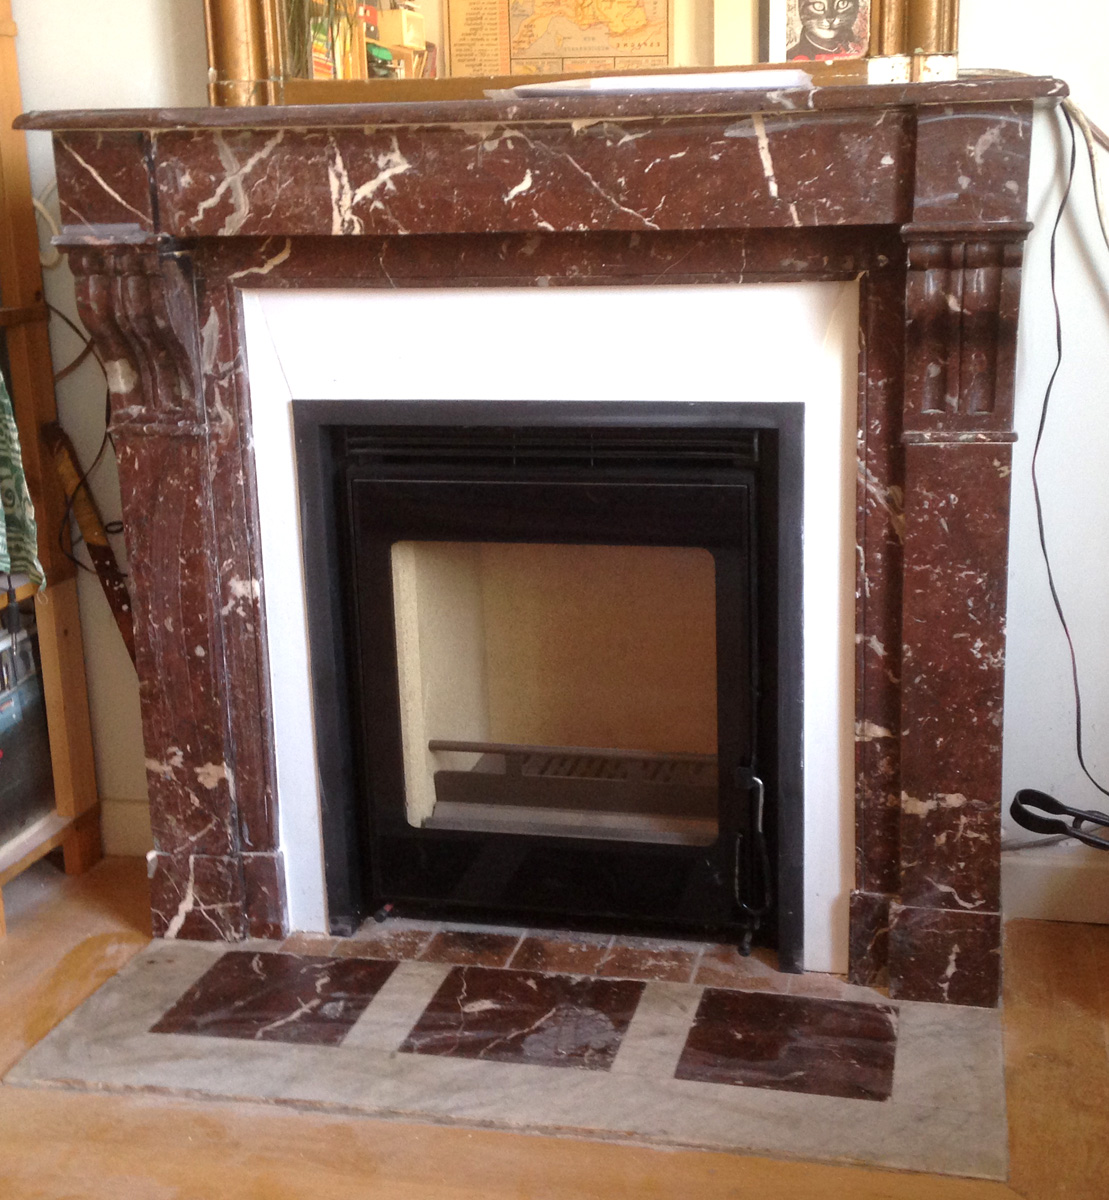 Installer insert dans chemin e ancienne nw82 jornalagora - Decoration cheminee marbre ...